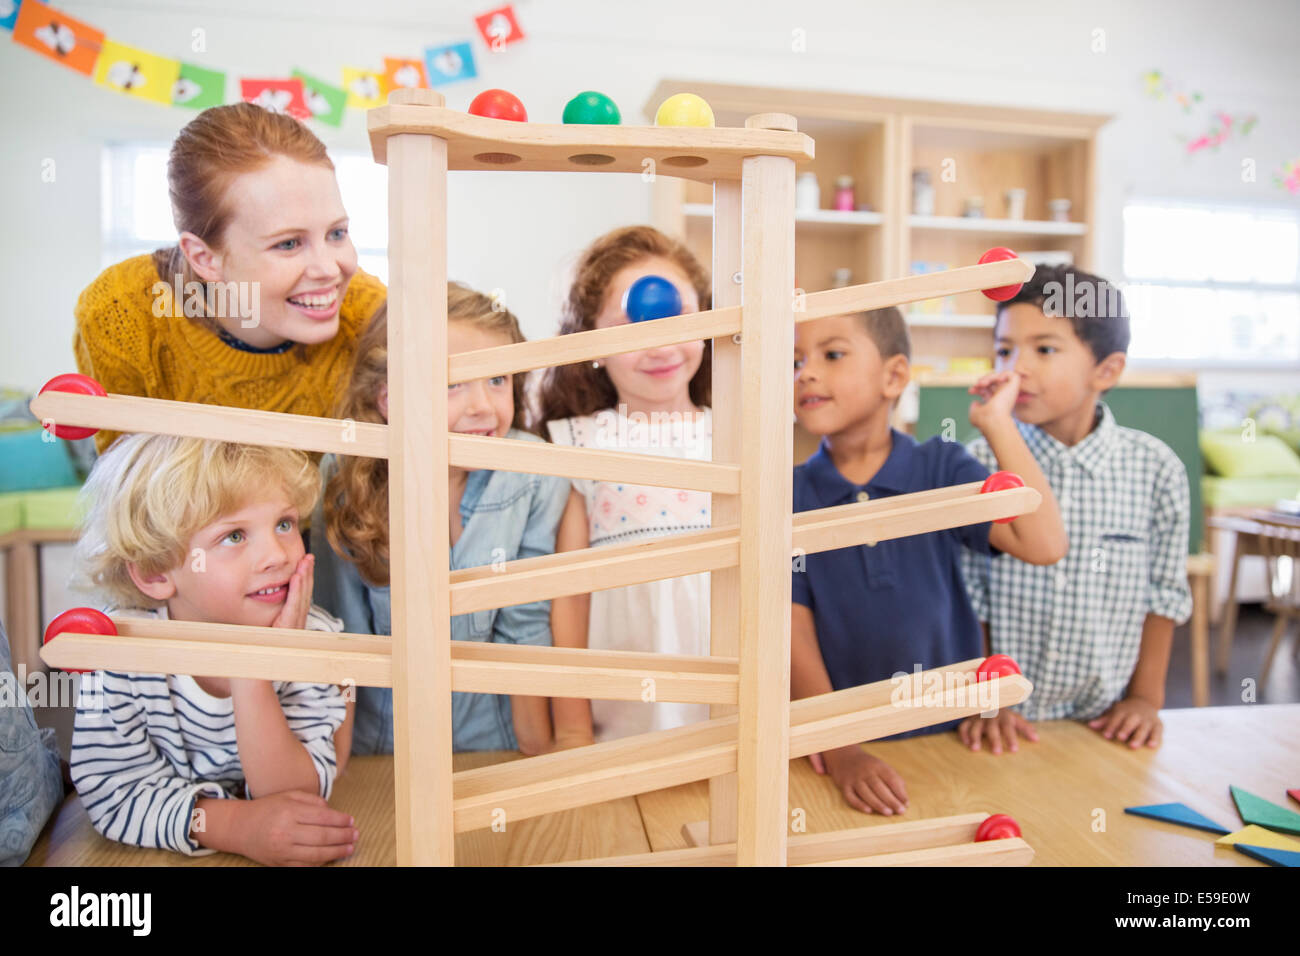 Students and teacher using model in classroom - Stock Image